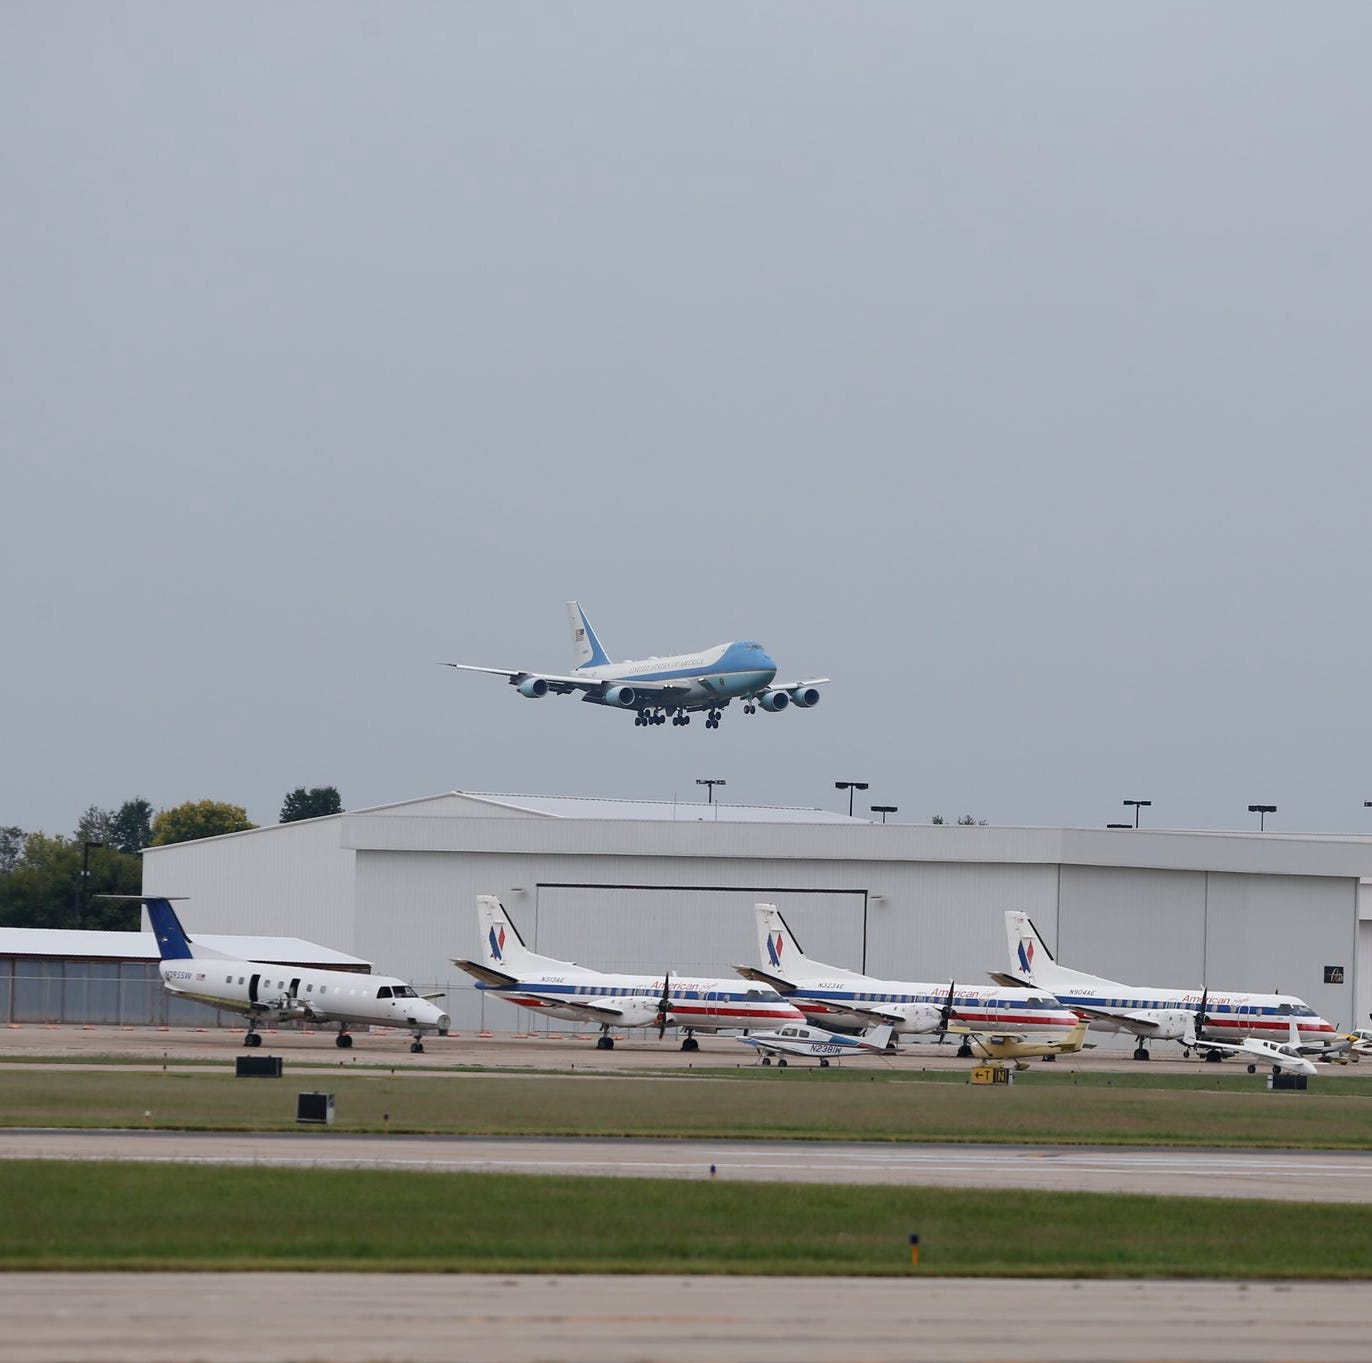 Trump touches down at Springfield airport